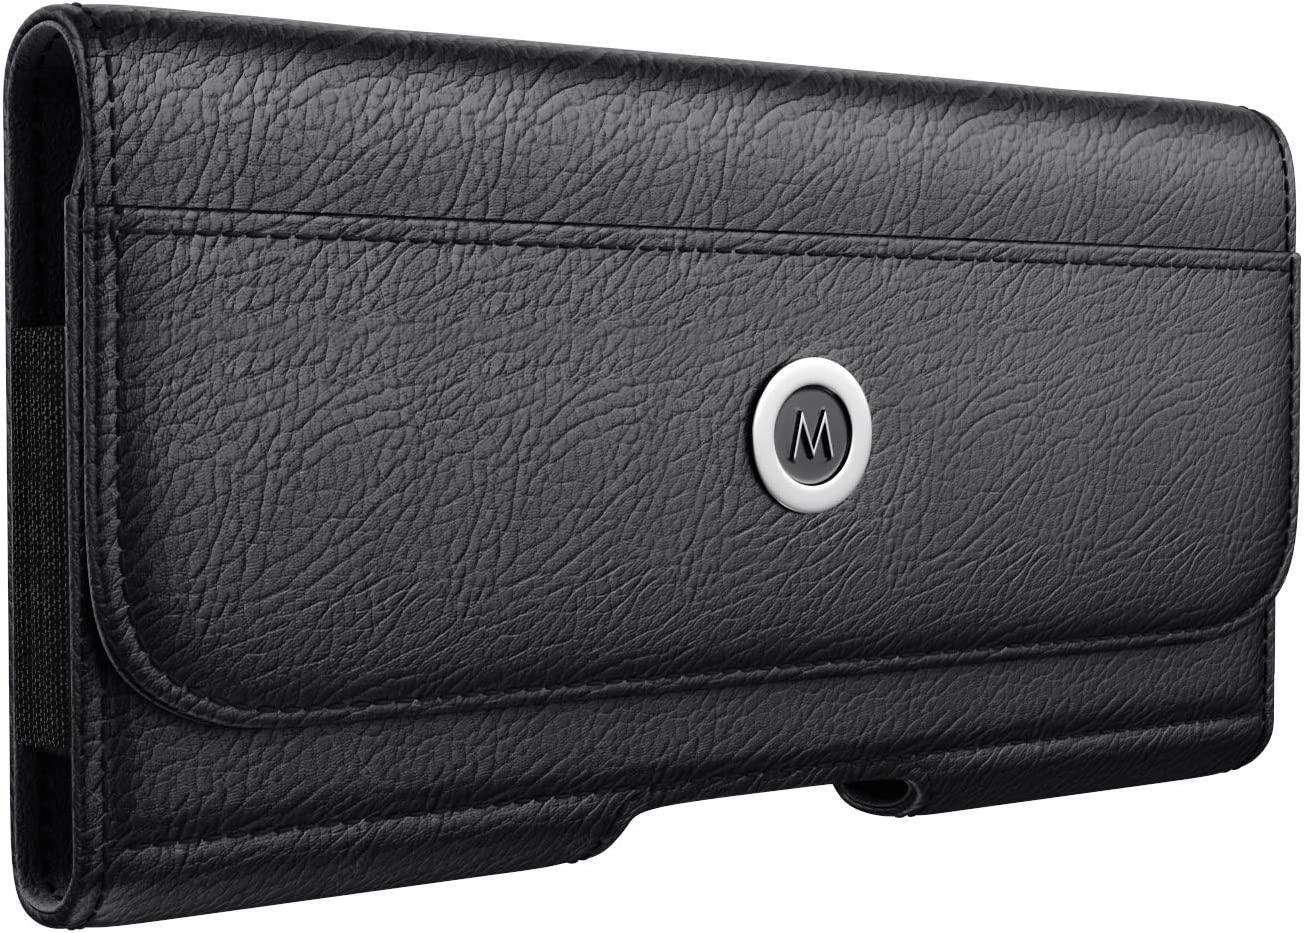 Meilib iPhone 10 X XS Holster, Premium Leather Belt Clip Case Pouch Holster Case with Belt Clip for Apple iPhone X/XS (Fit w/a Thin to Medium Cover on) - Built in Card Slot Holder - Black